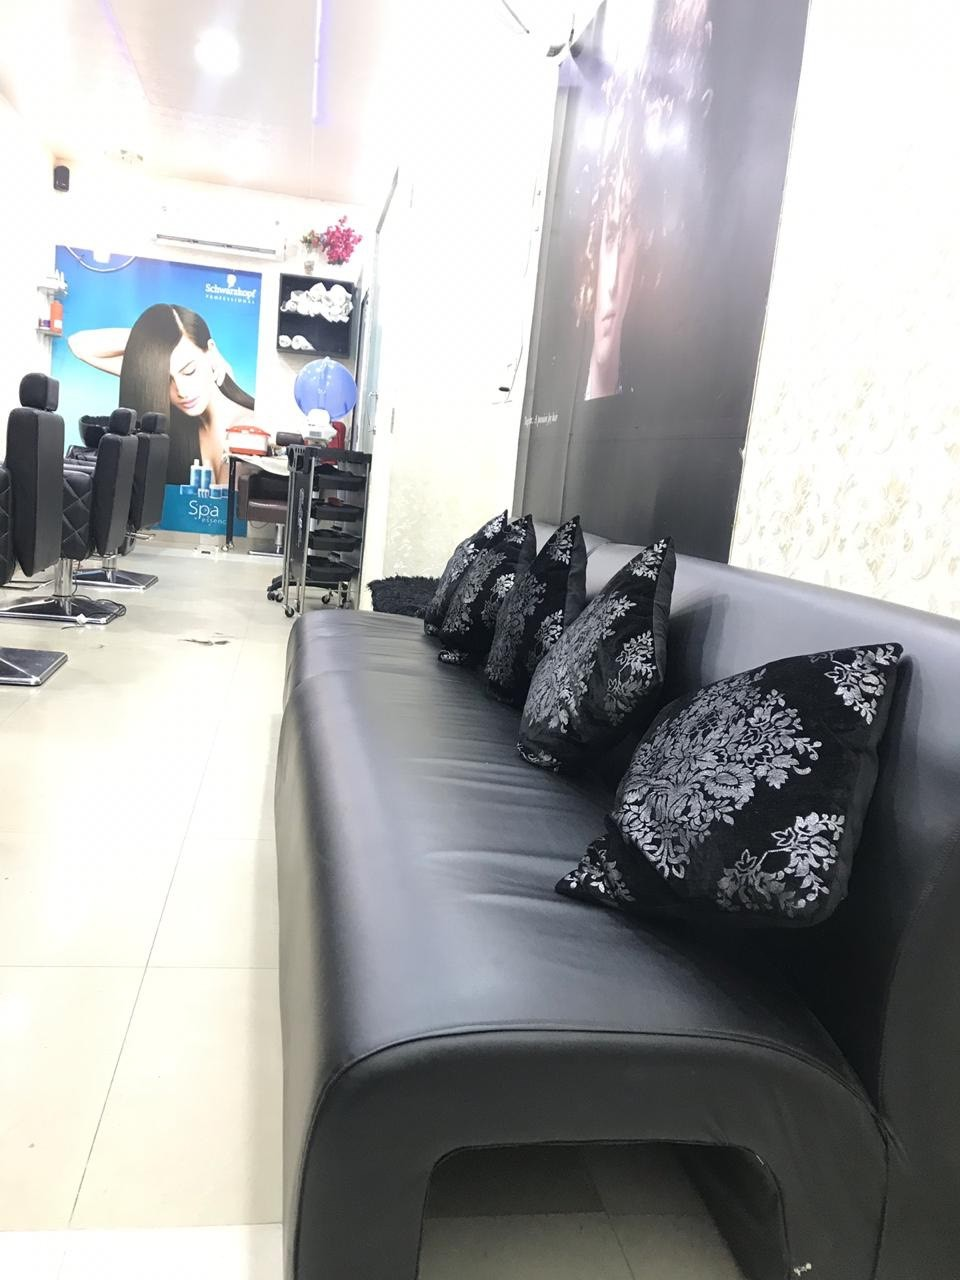 Ellcanes Unisex Salon - Get any 10 Services in 999 only